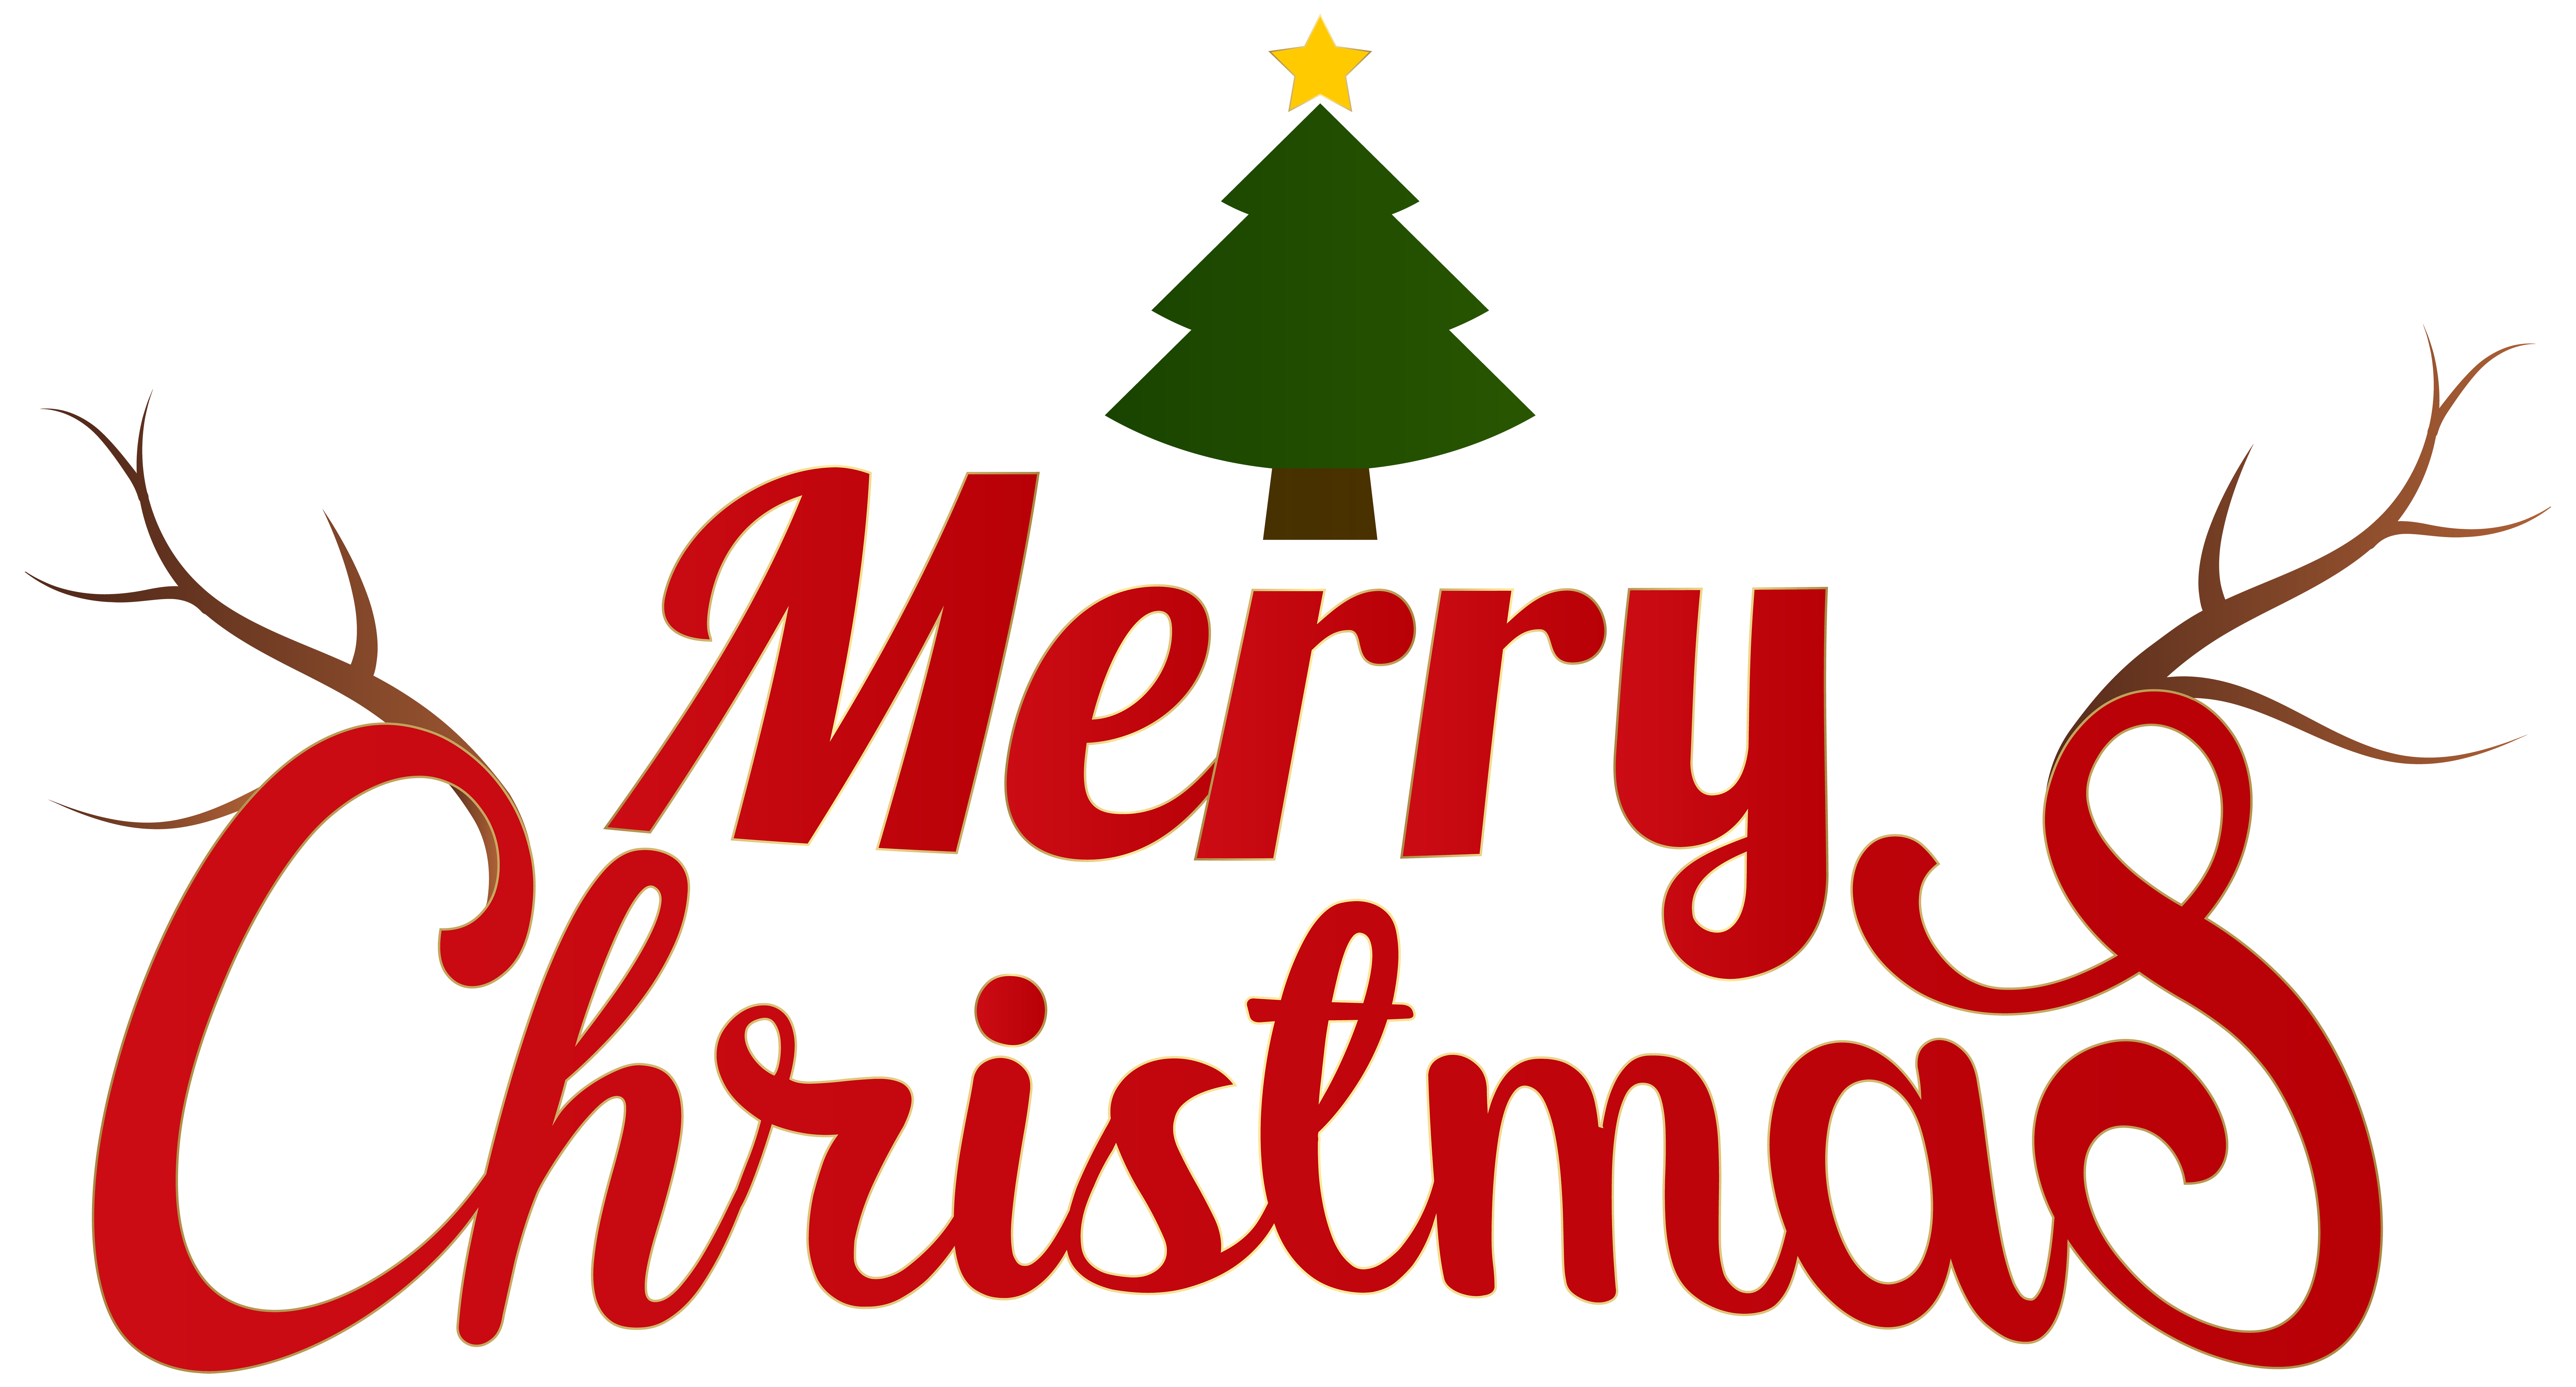 Transparent Background Merry Christmas Clipart.